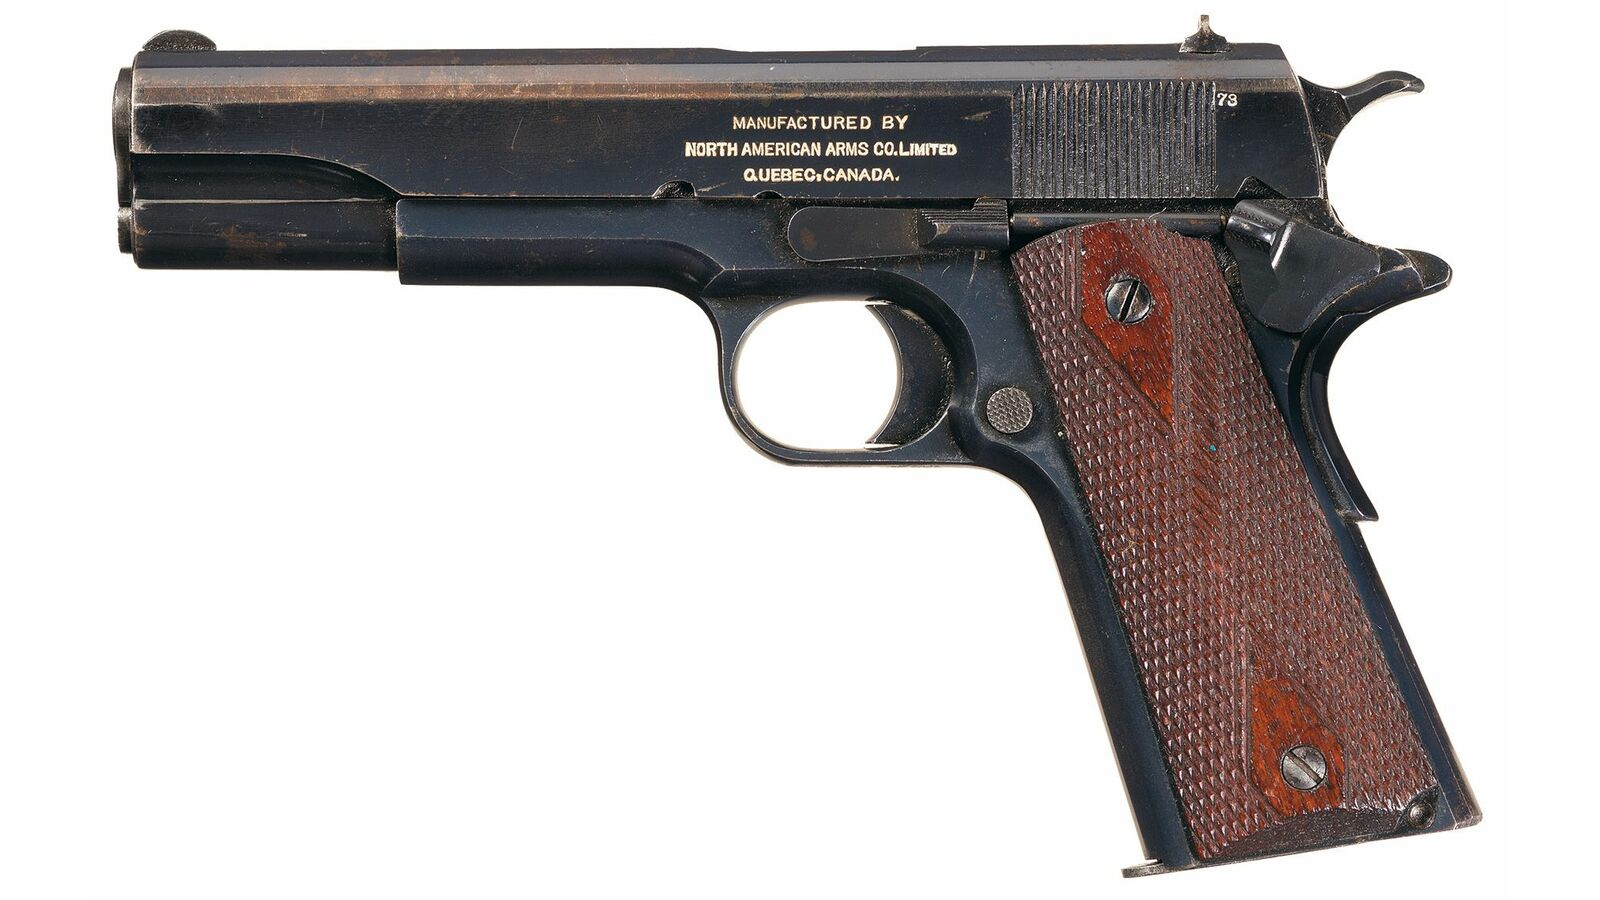 North American Arms Model 1911 pistol